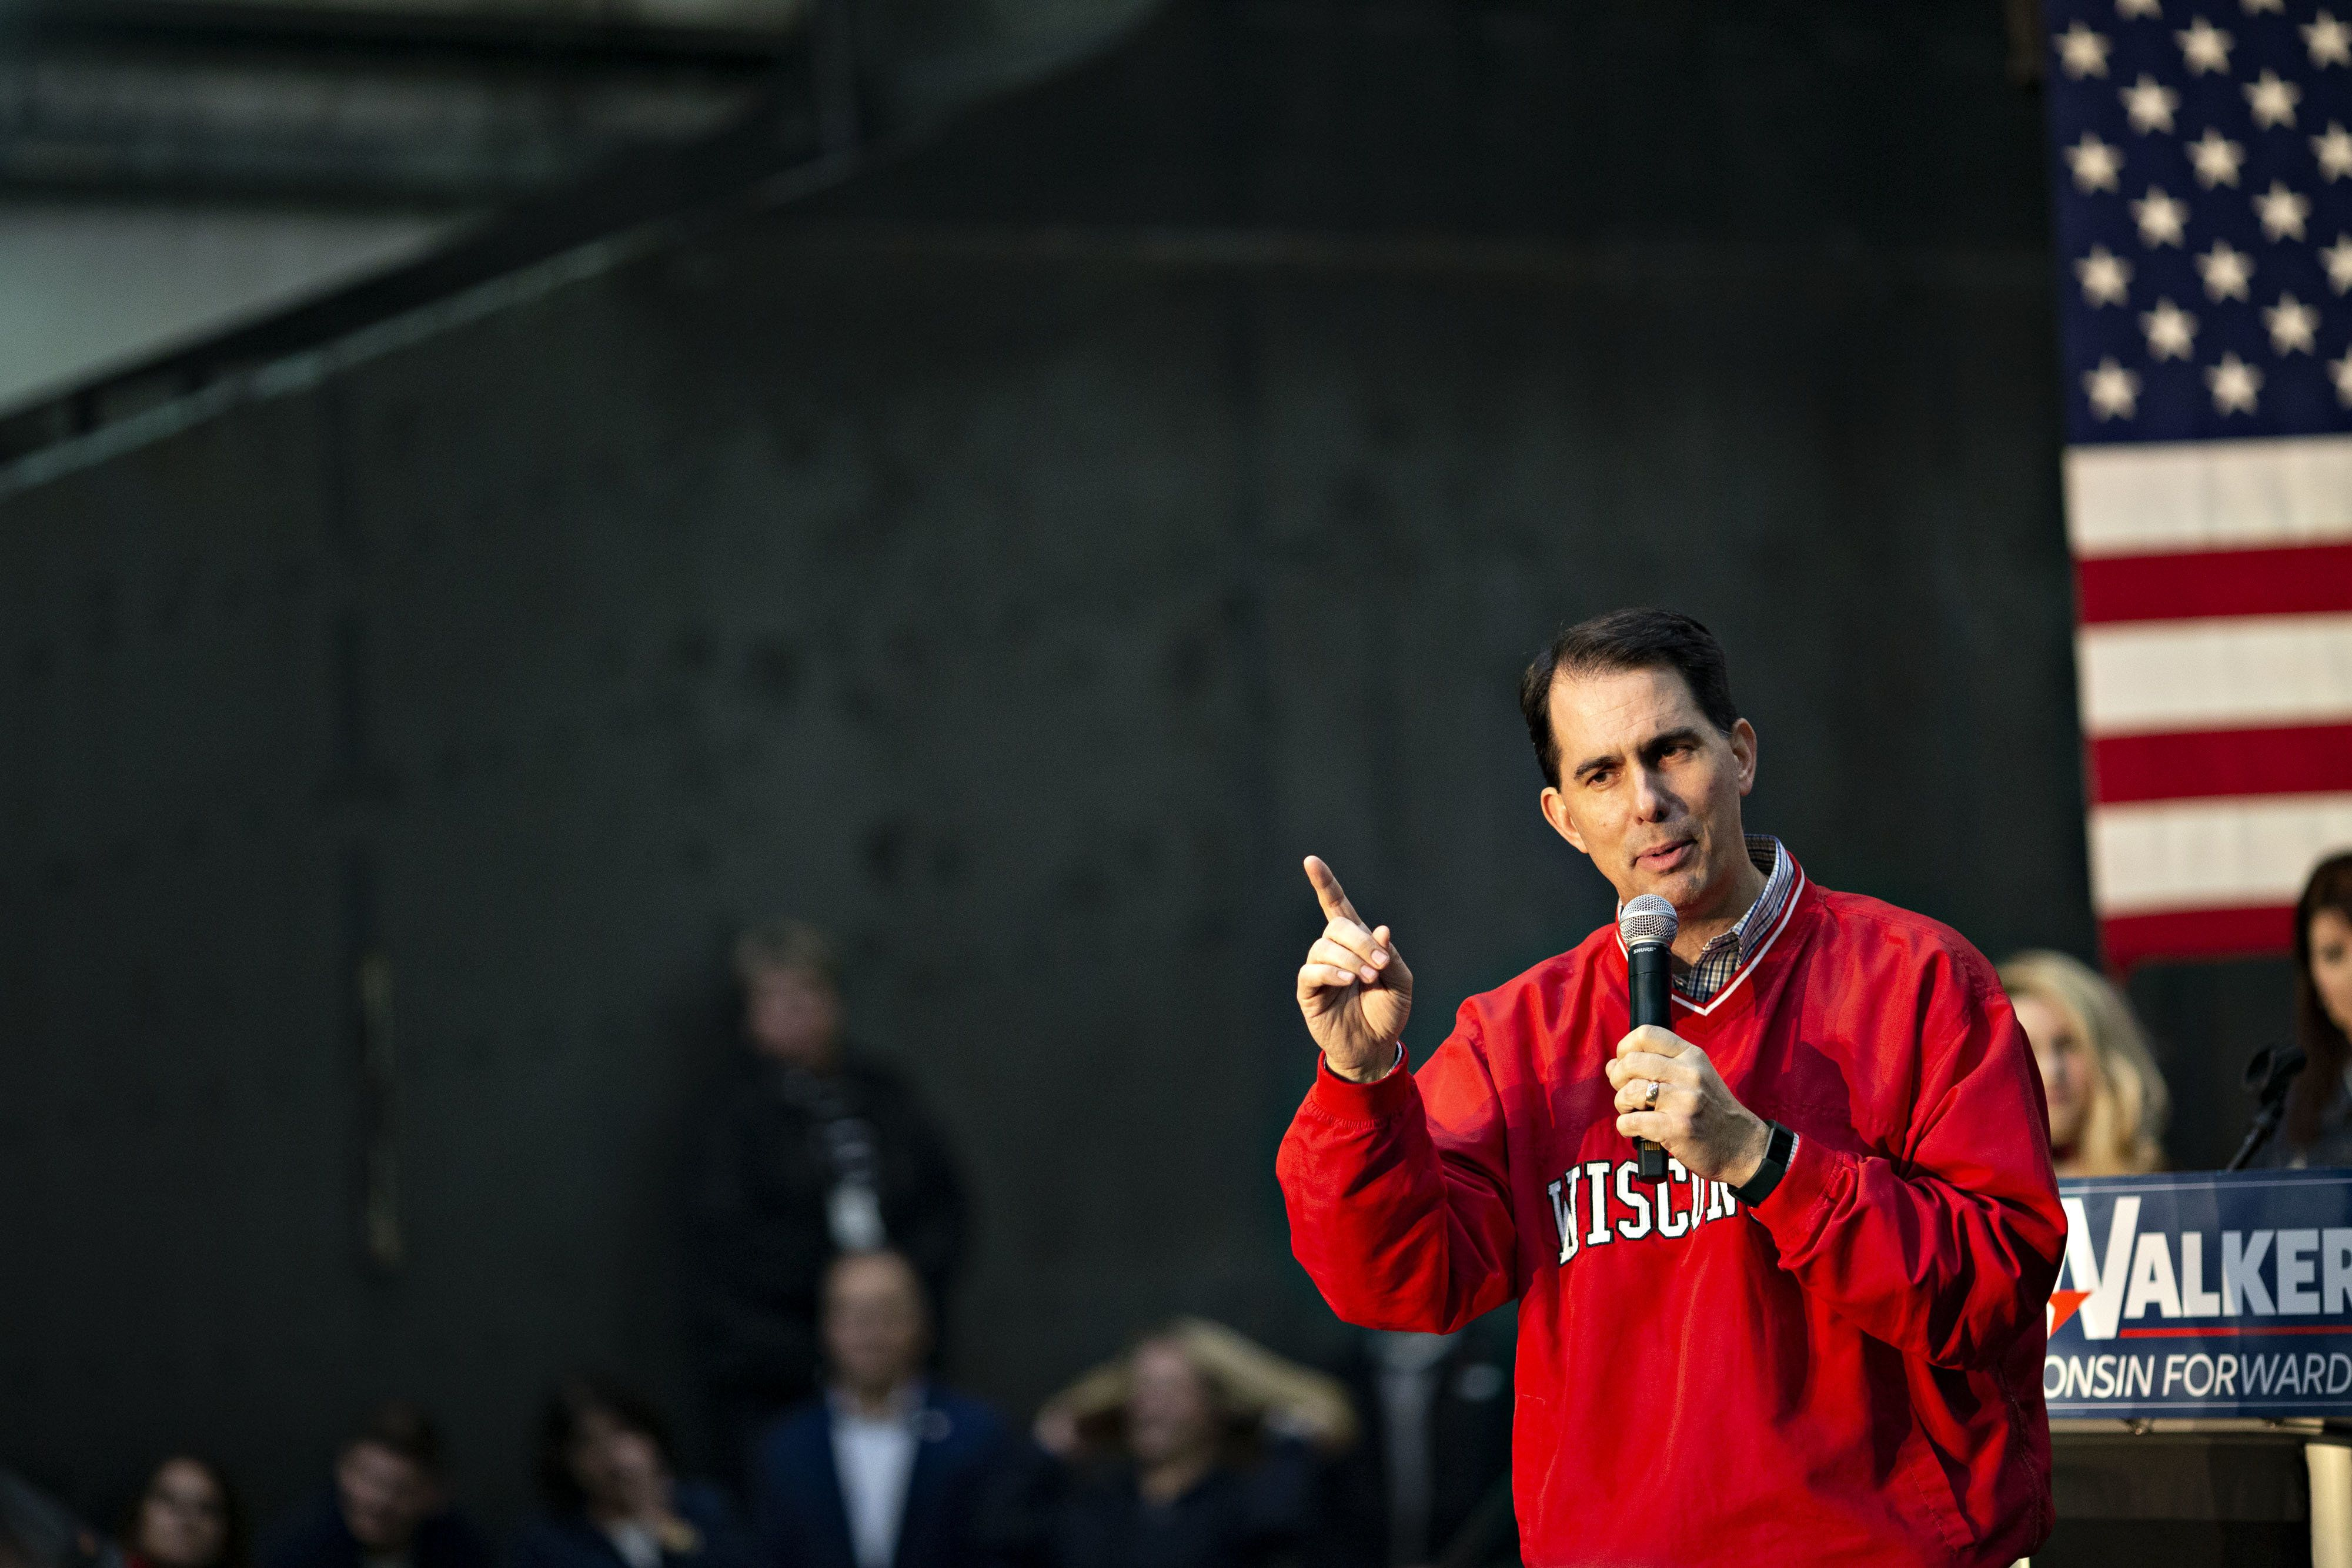 Scott Walker, governor of Wisconsin, speaks during a campaign rally at Weldall Manufacturing Inc., in Waukesha, Wisconsin, U.S., on Monday, Nov. 5, 2018. The most expensive midterm campaign in U.S. history raced to a finish ahead of Tuesday's elections, as both sides braced for a possible split decision that would hand the House to Democrats and leave Republicans holding onto or expanding their Senate majority. Photographer: Daniel Acker/Bloomberg via Getty Images